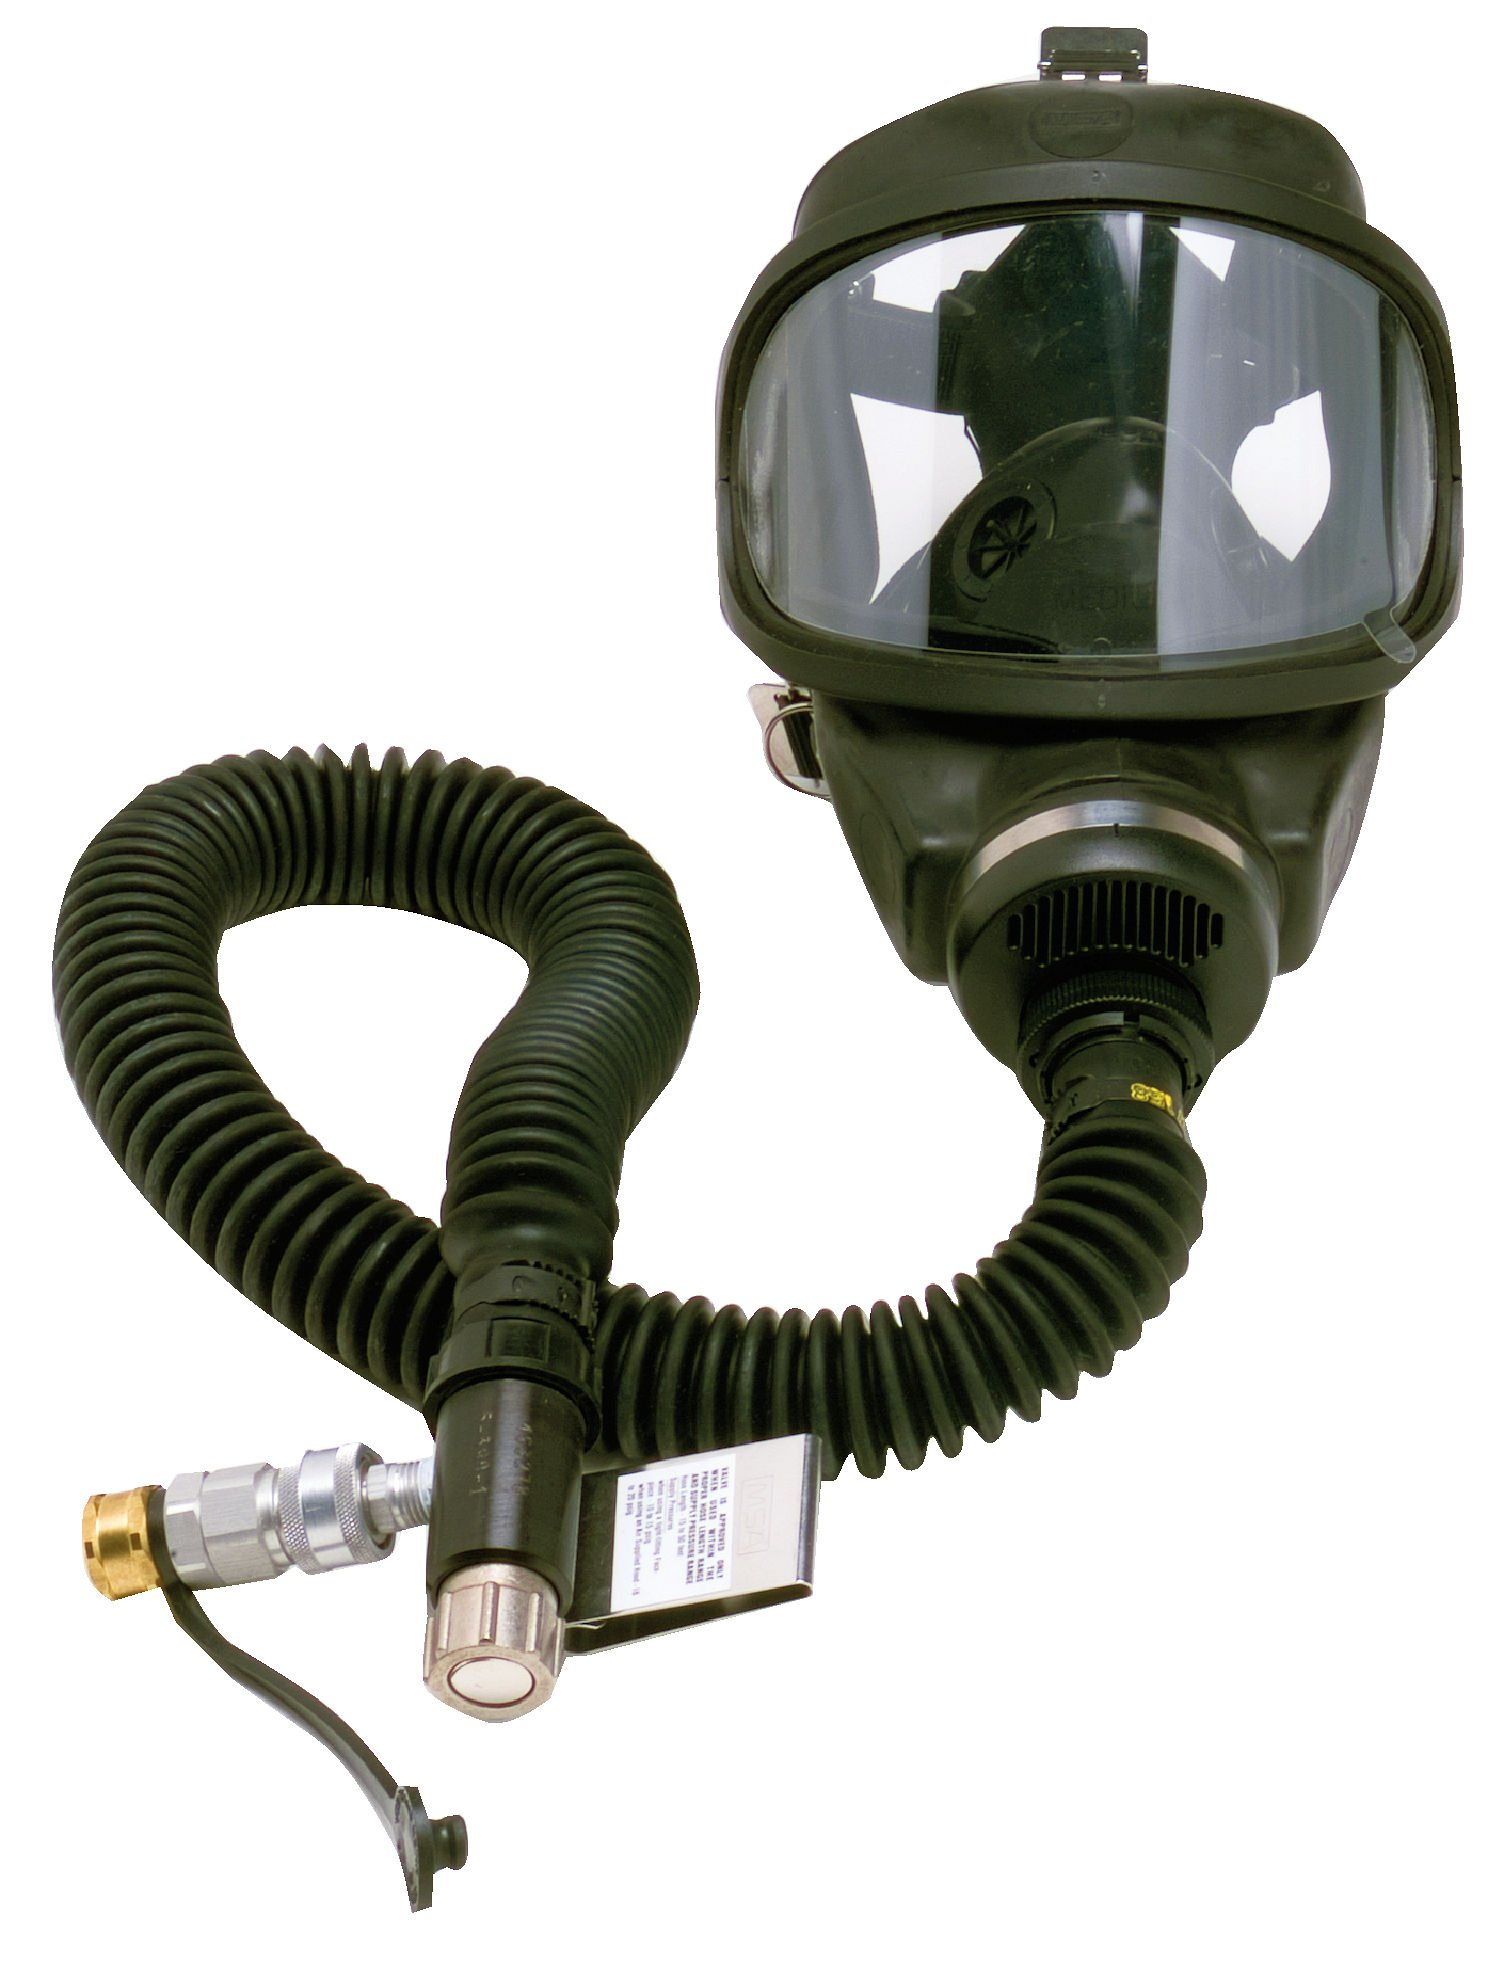 MSA Safety 480472 Constant Flow Air-Line Respirator Complete Assembly with Ultravue Facepiece and Foster Steel Fitting